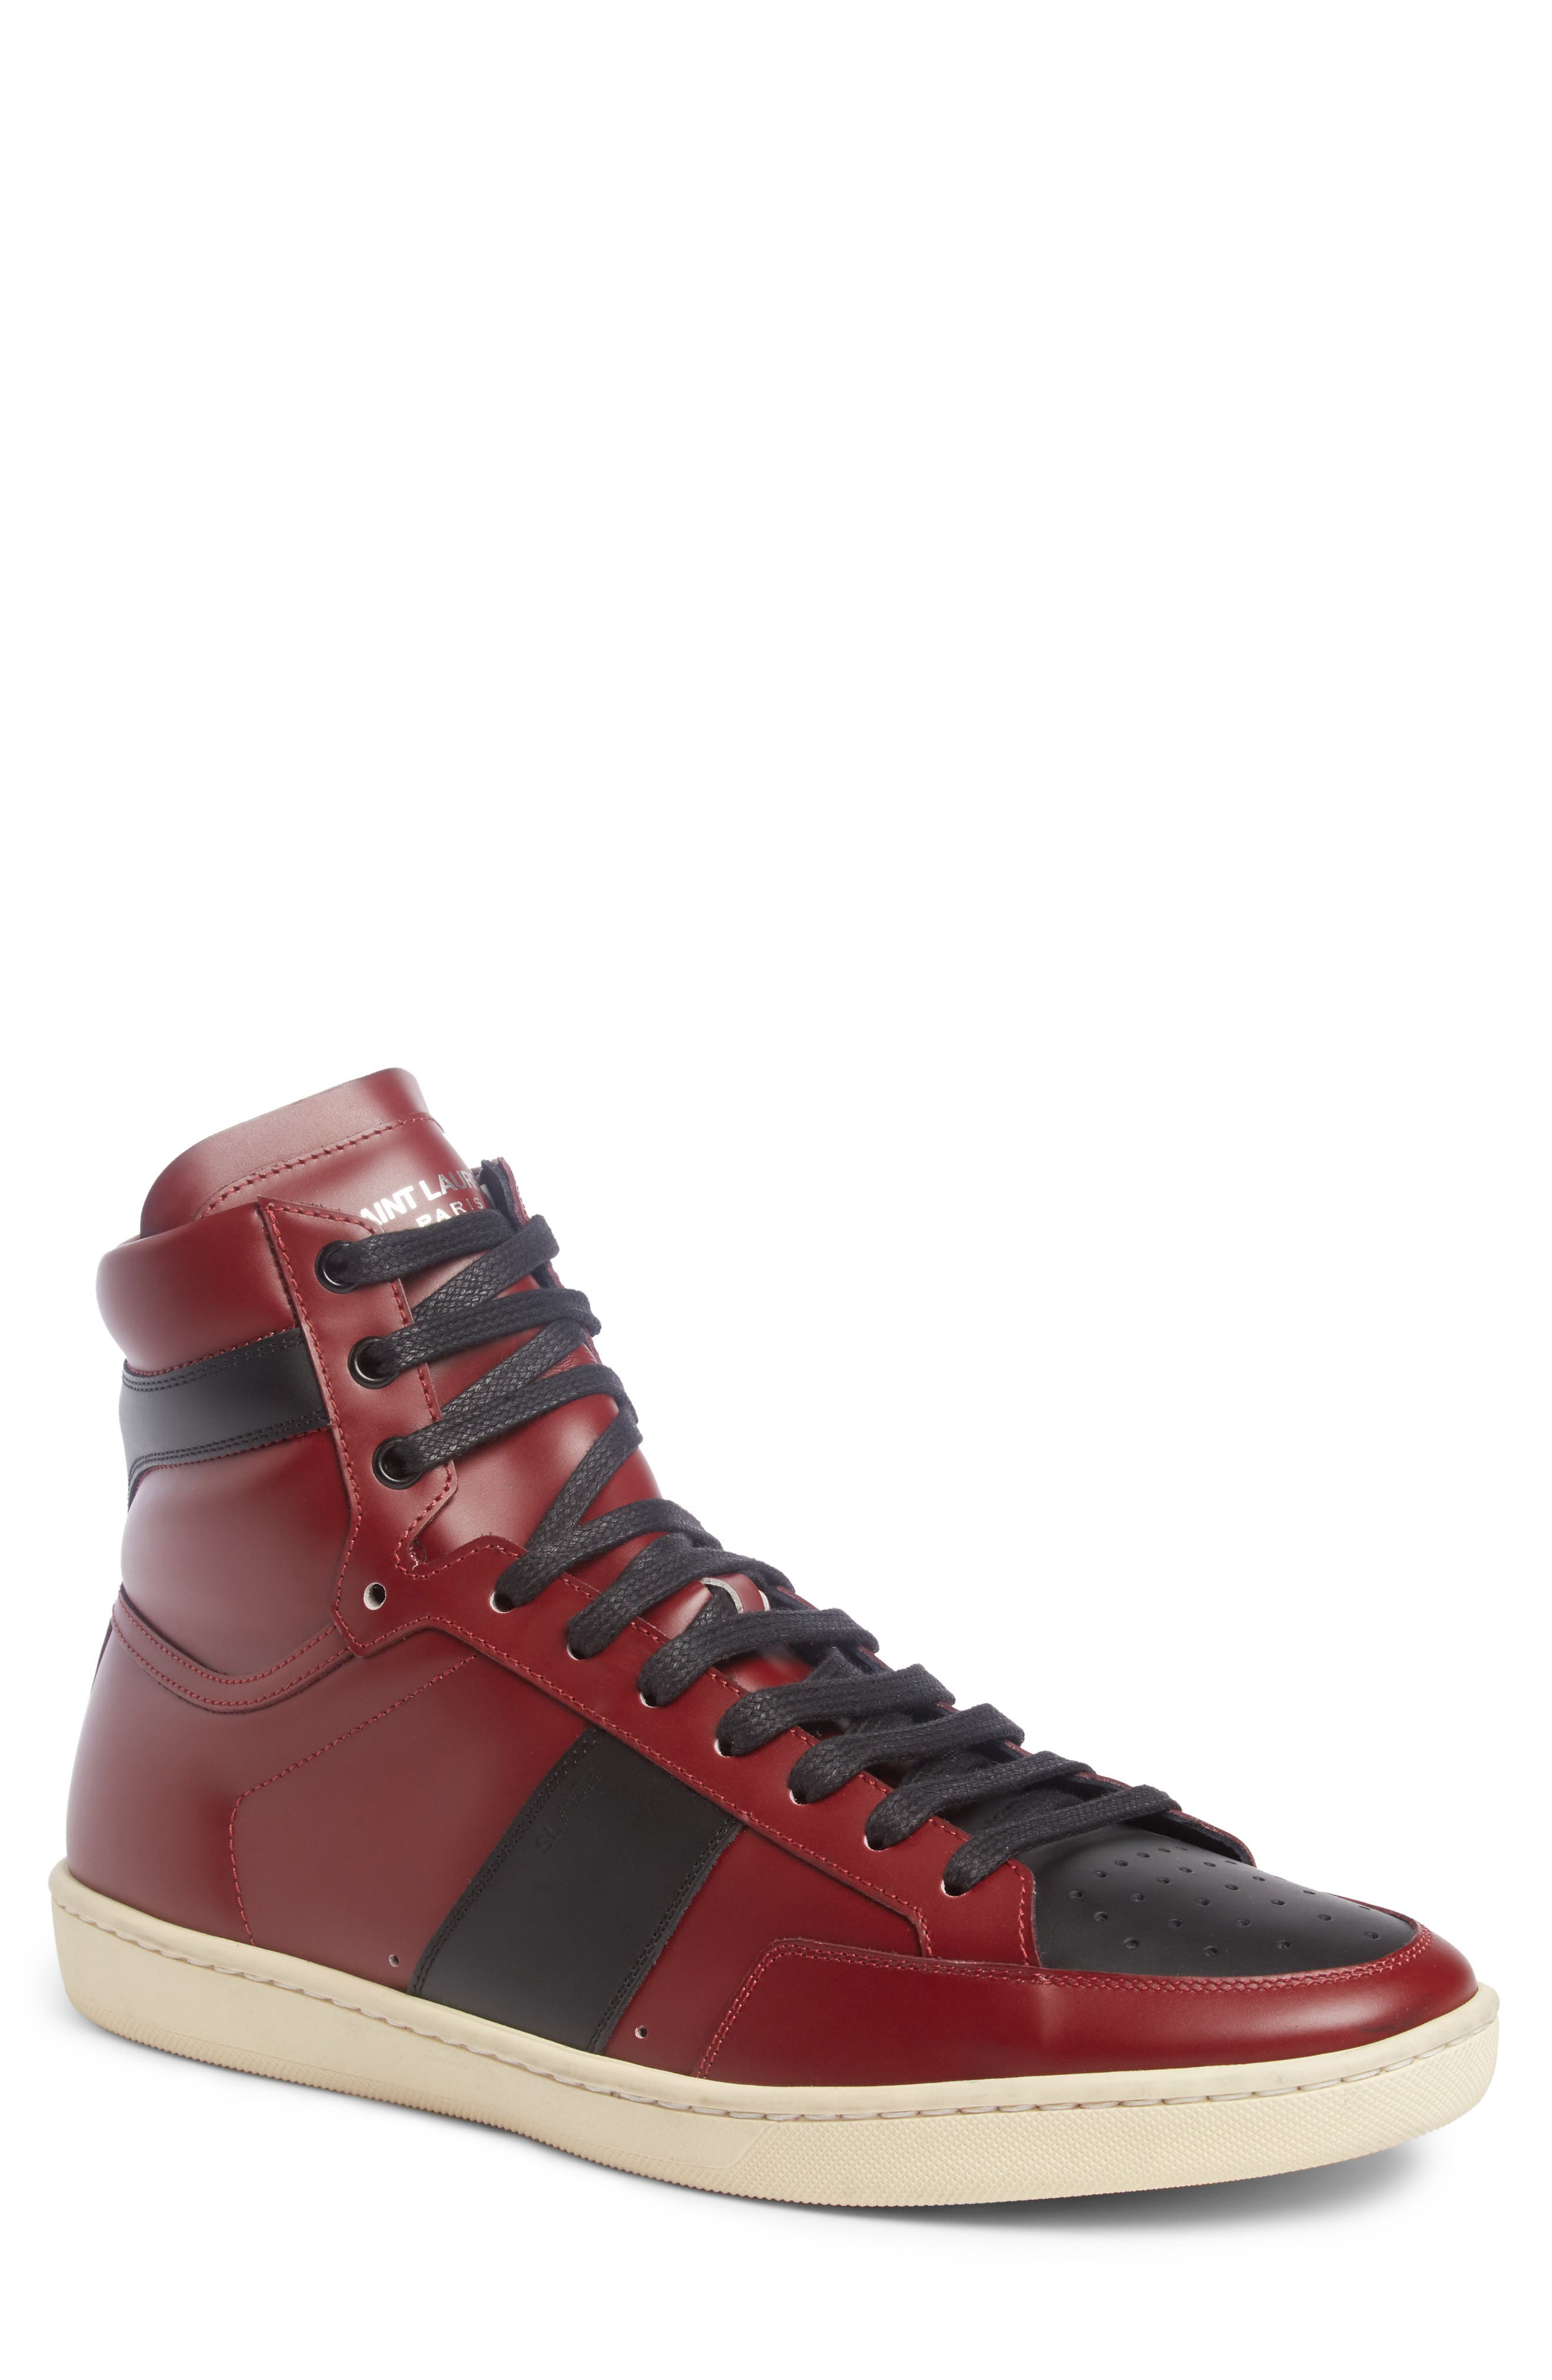 SL/10H Signature Court Classic High-Top Sneaker,                         Main,                         color, Dp Red/ Blk Leather